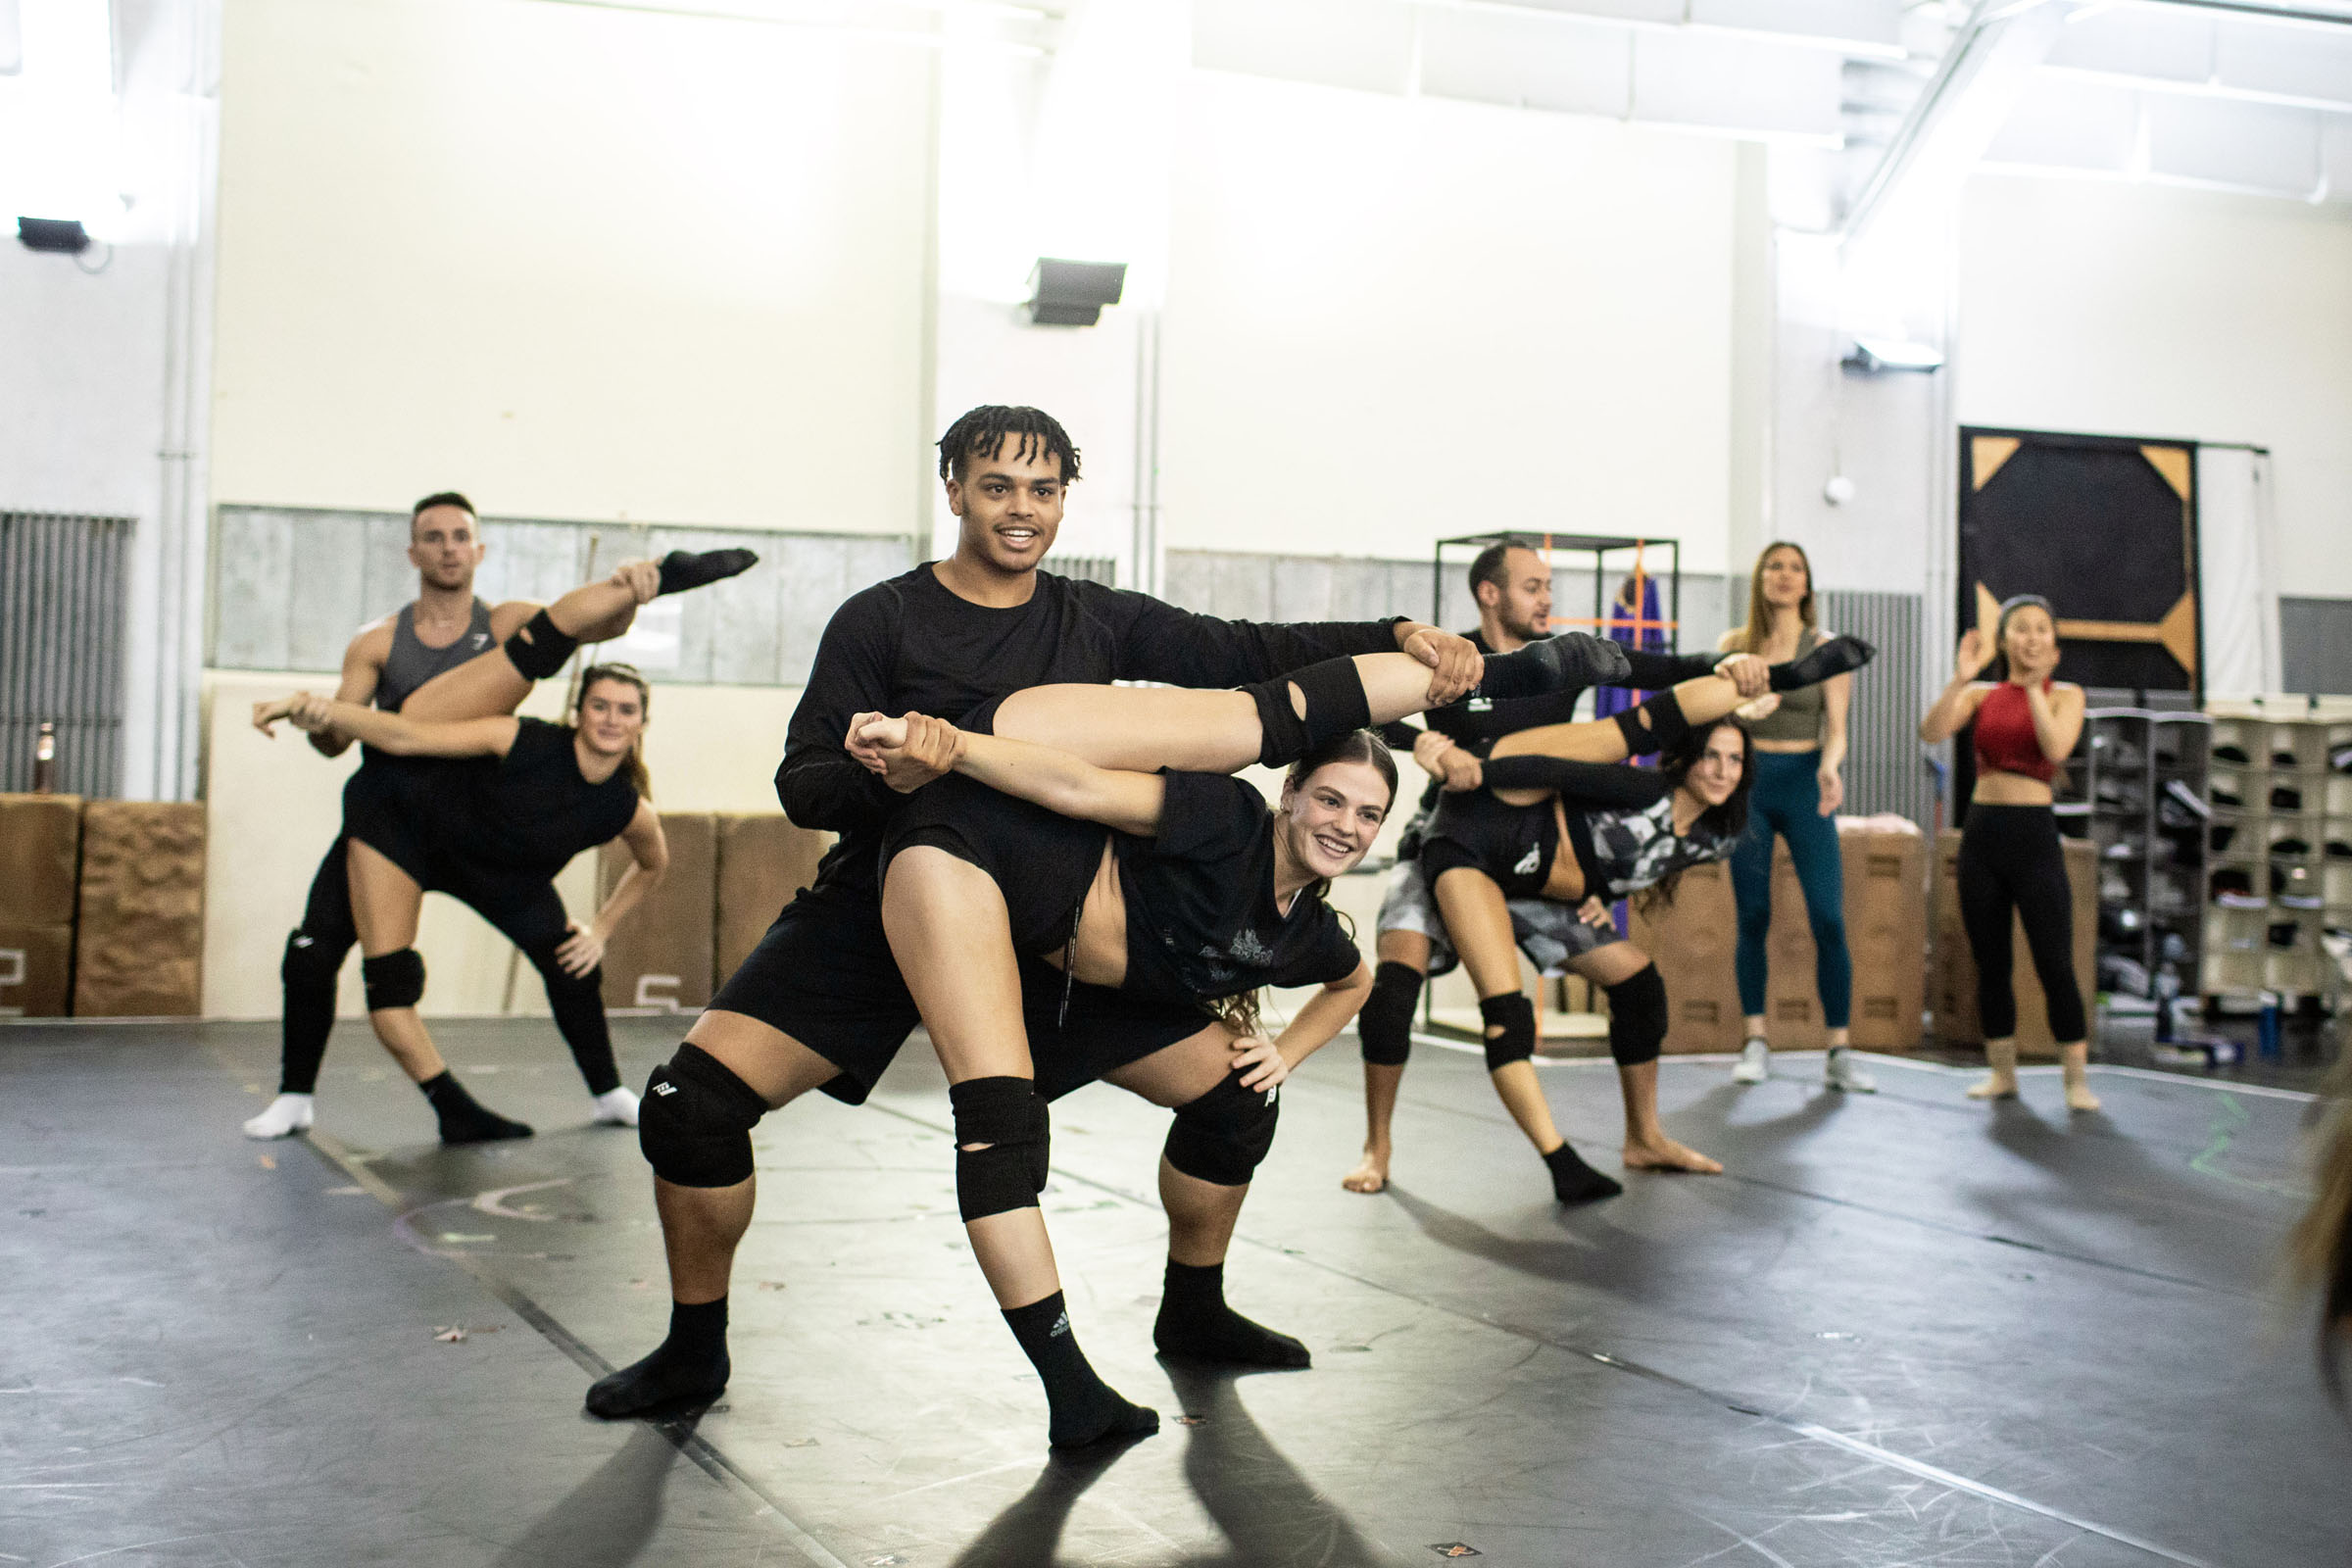 Dancers rehearsing during The Prince of Egypt